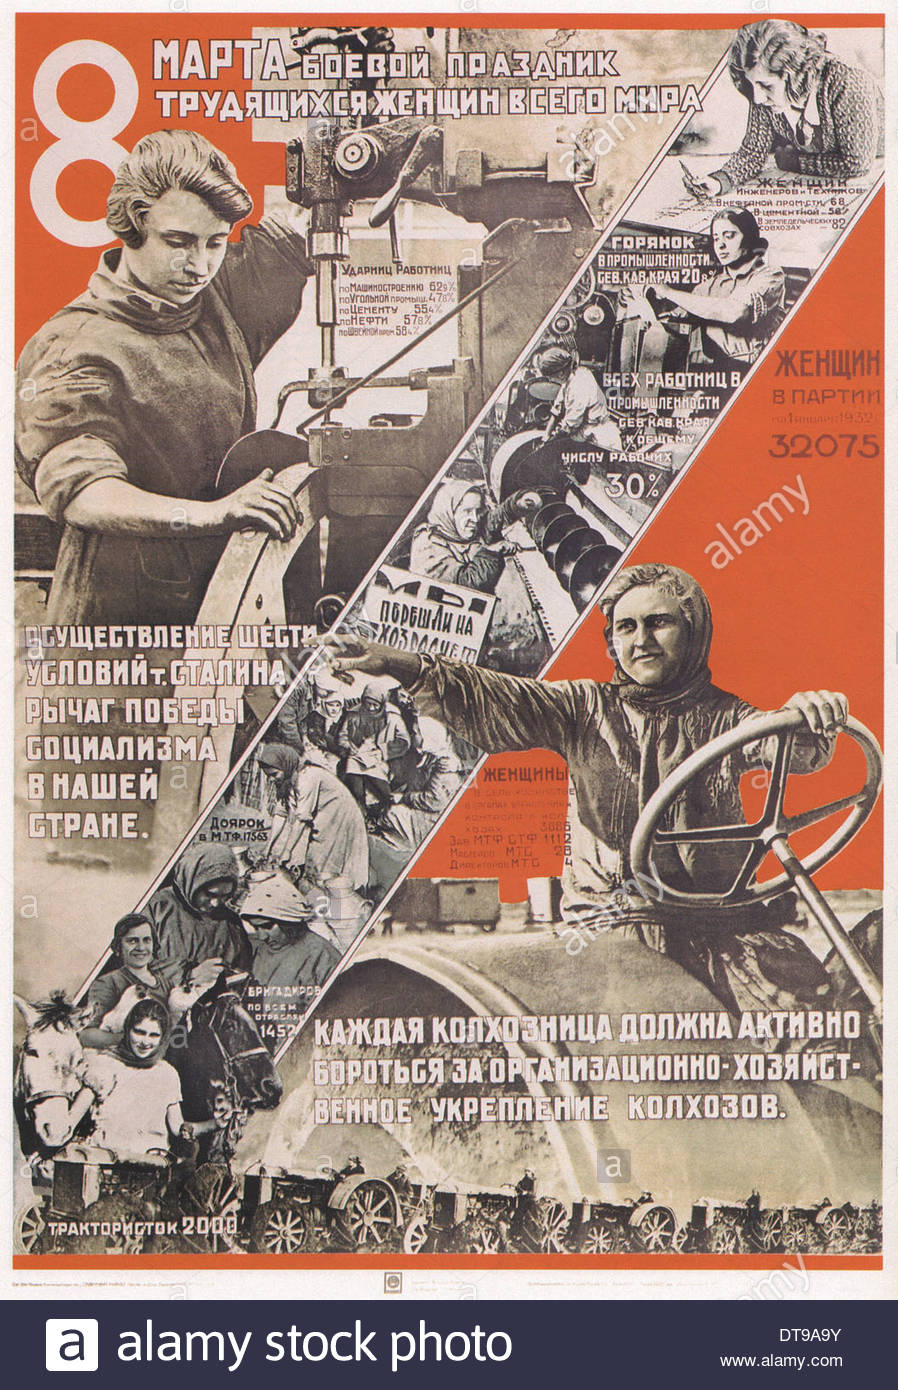 8th of March is a celebration for all women-workers everywhere is the world, 1932. Artist: Mytnikov-Kobylin, A. (active 1930s) - Stock Image